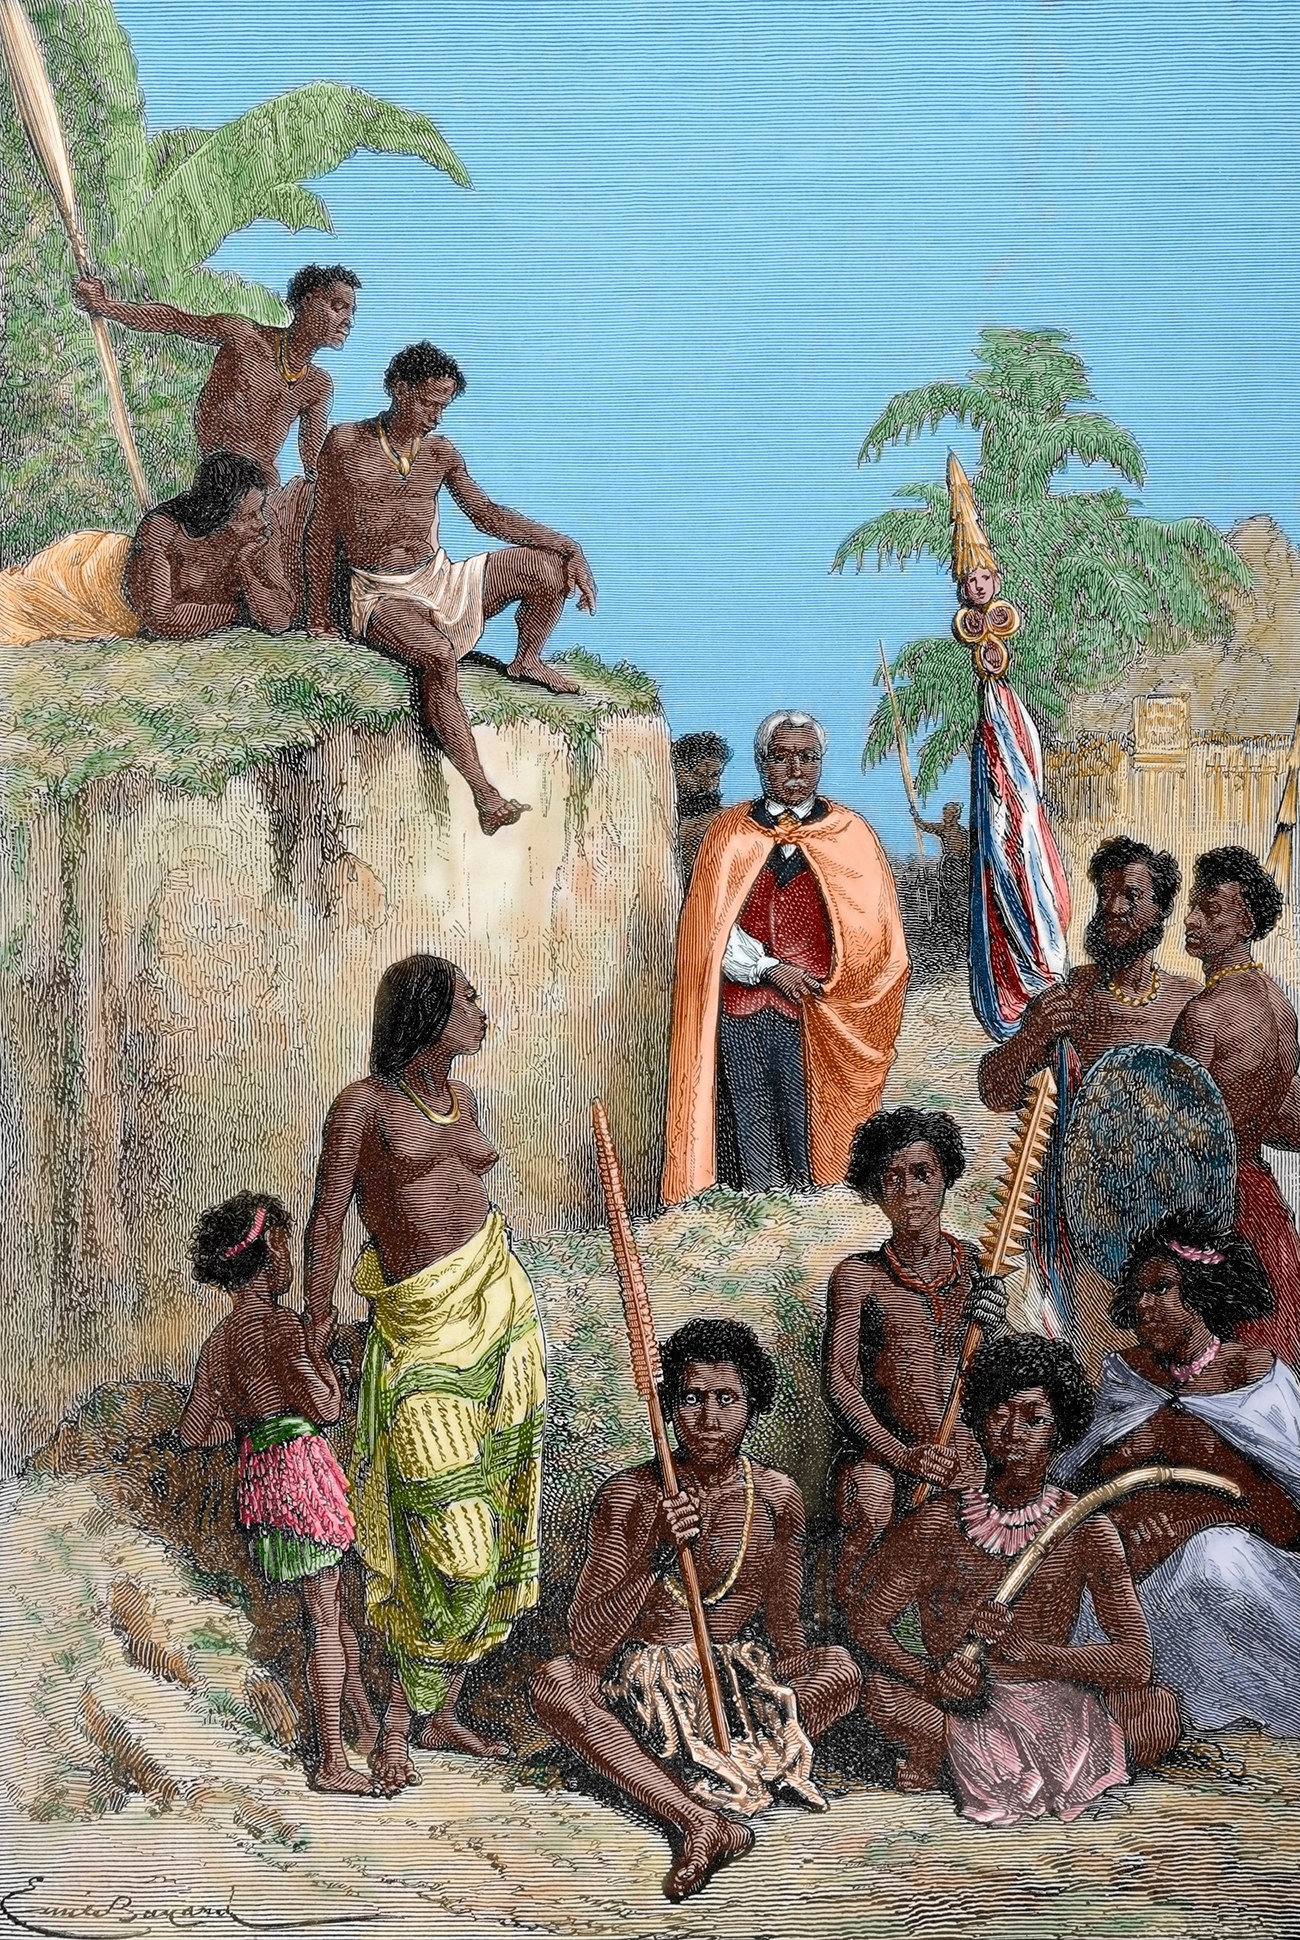 King of Hawaii Island, Kamehameha I (1758-1819) and his warriors, 1819. Engraving by E. Bayard / The Illustrated World, 1880. Source: Getty Images